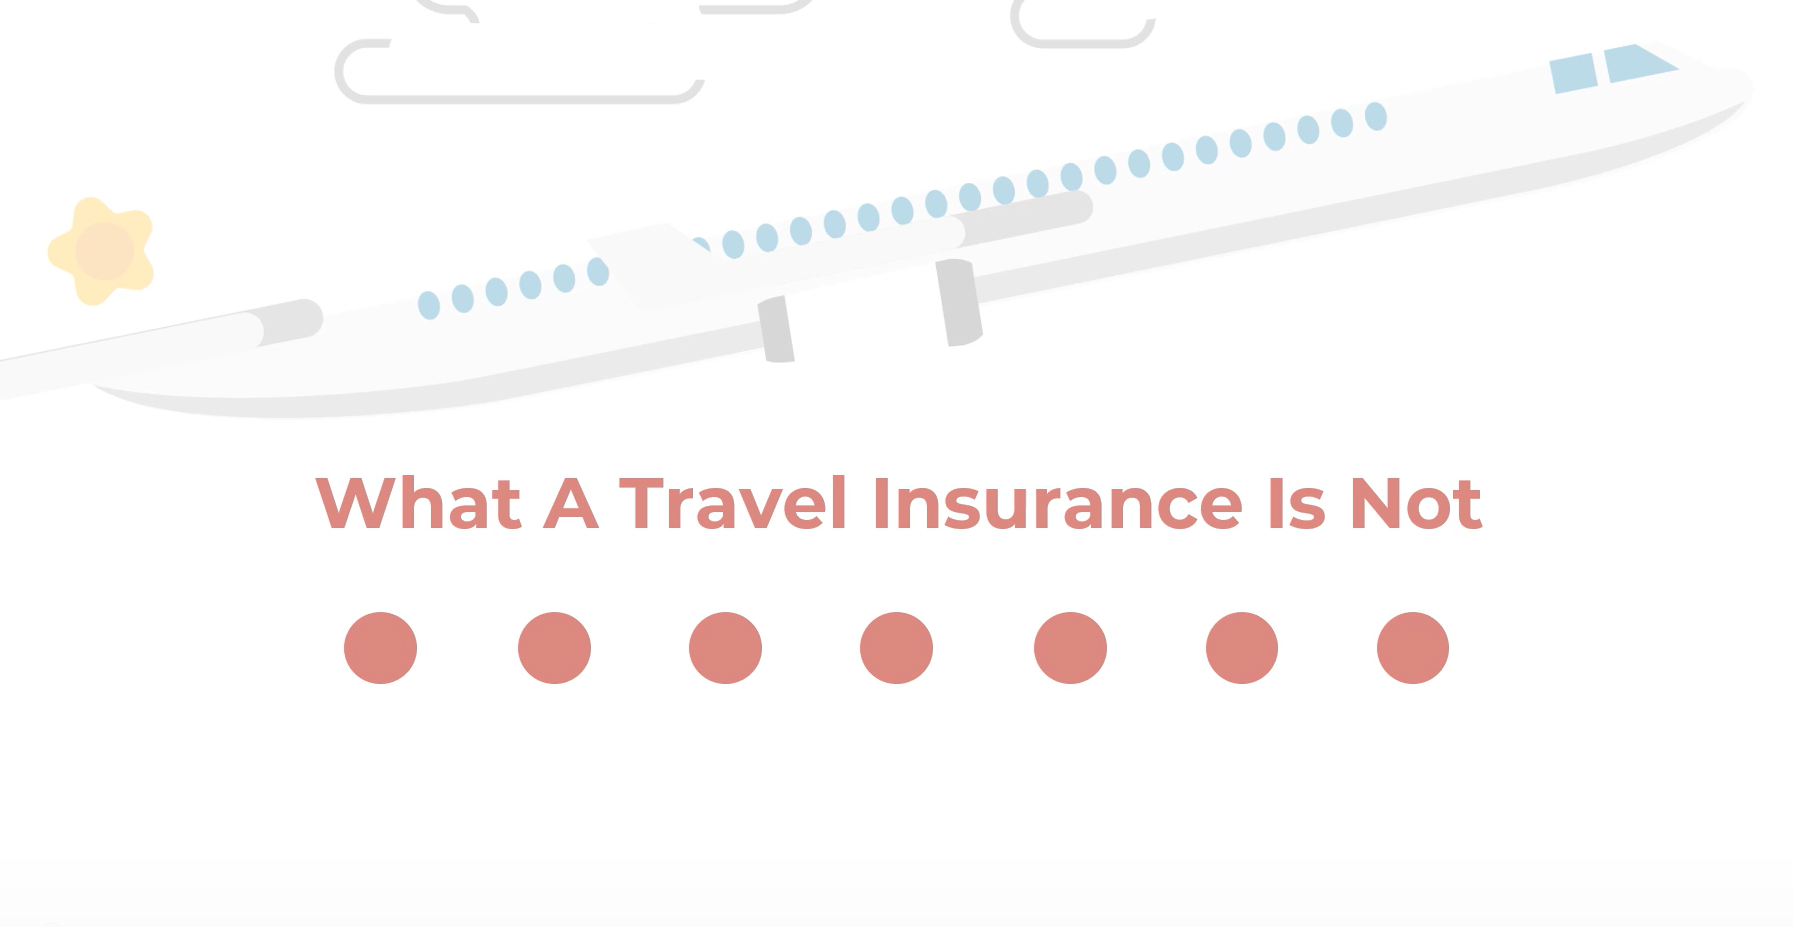 HL Assurance is a licensed direct insurance company that offers travel insurance promotions in Singapore!   Travel insurance. Travel. Insurance